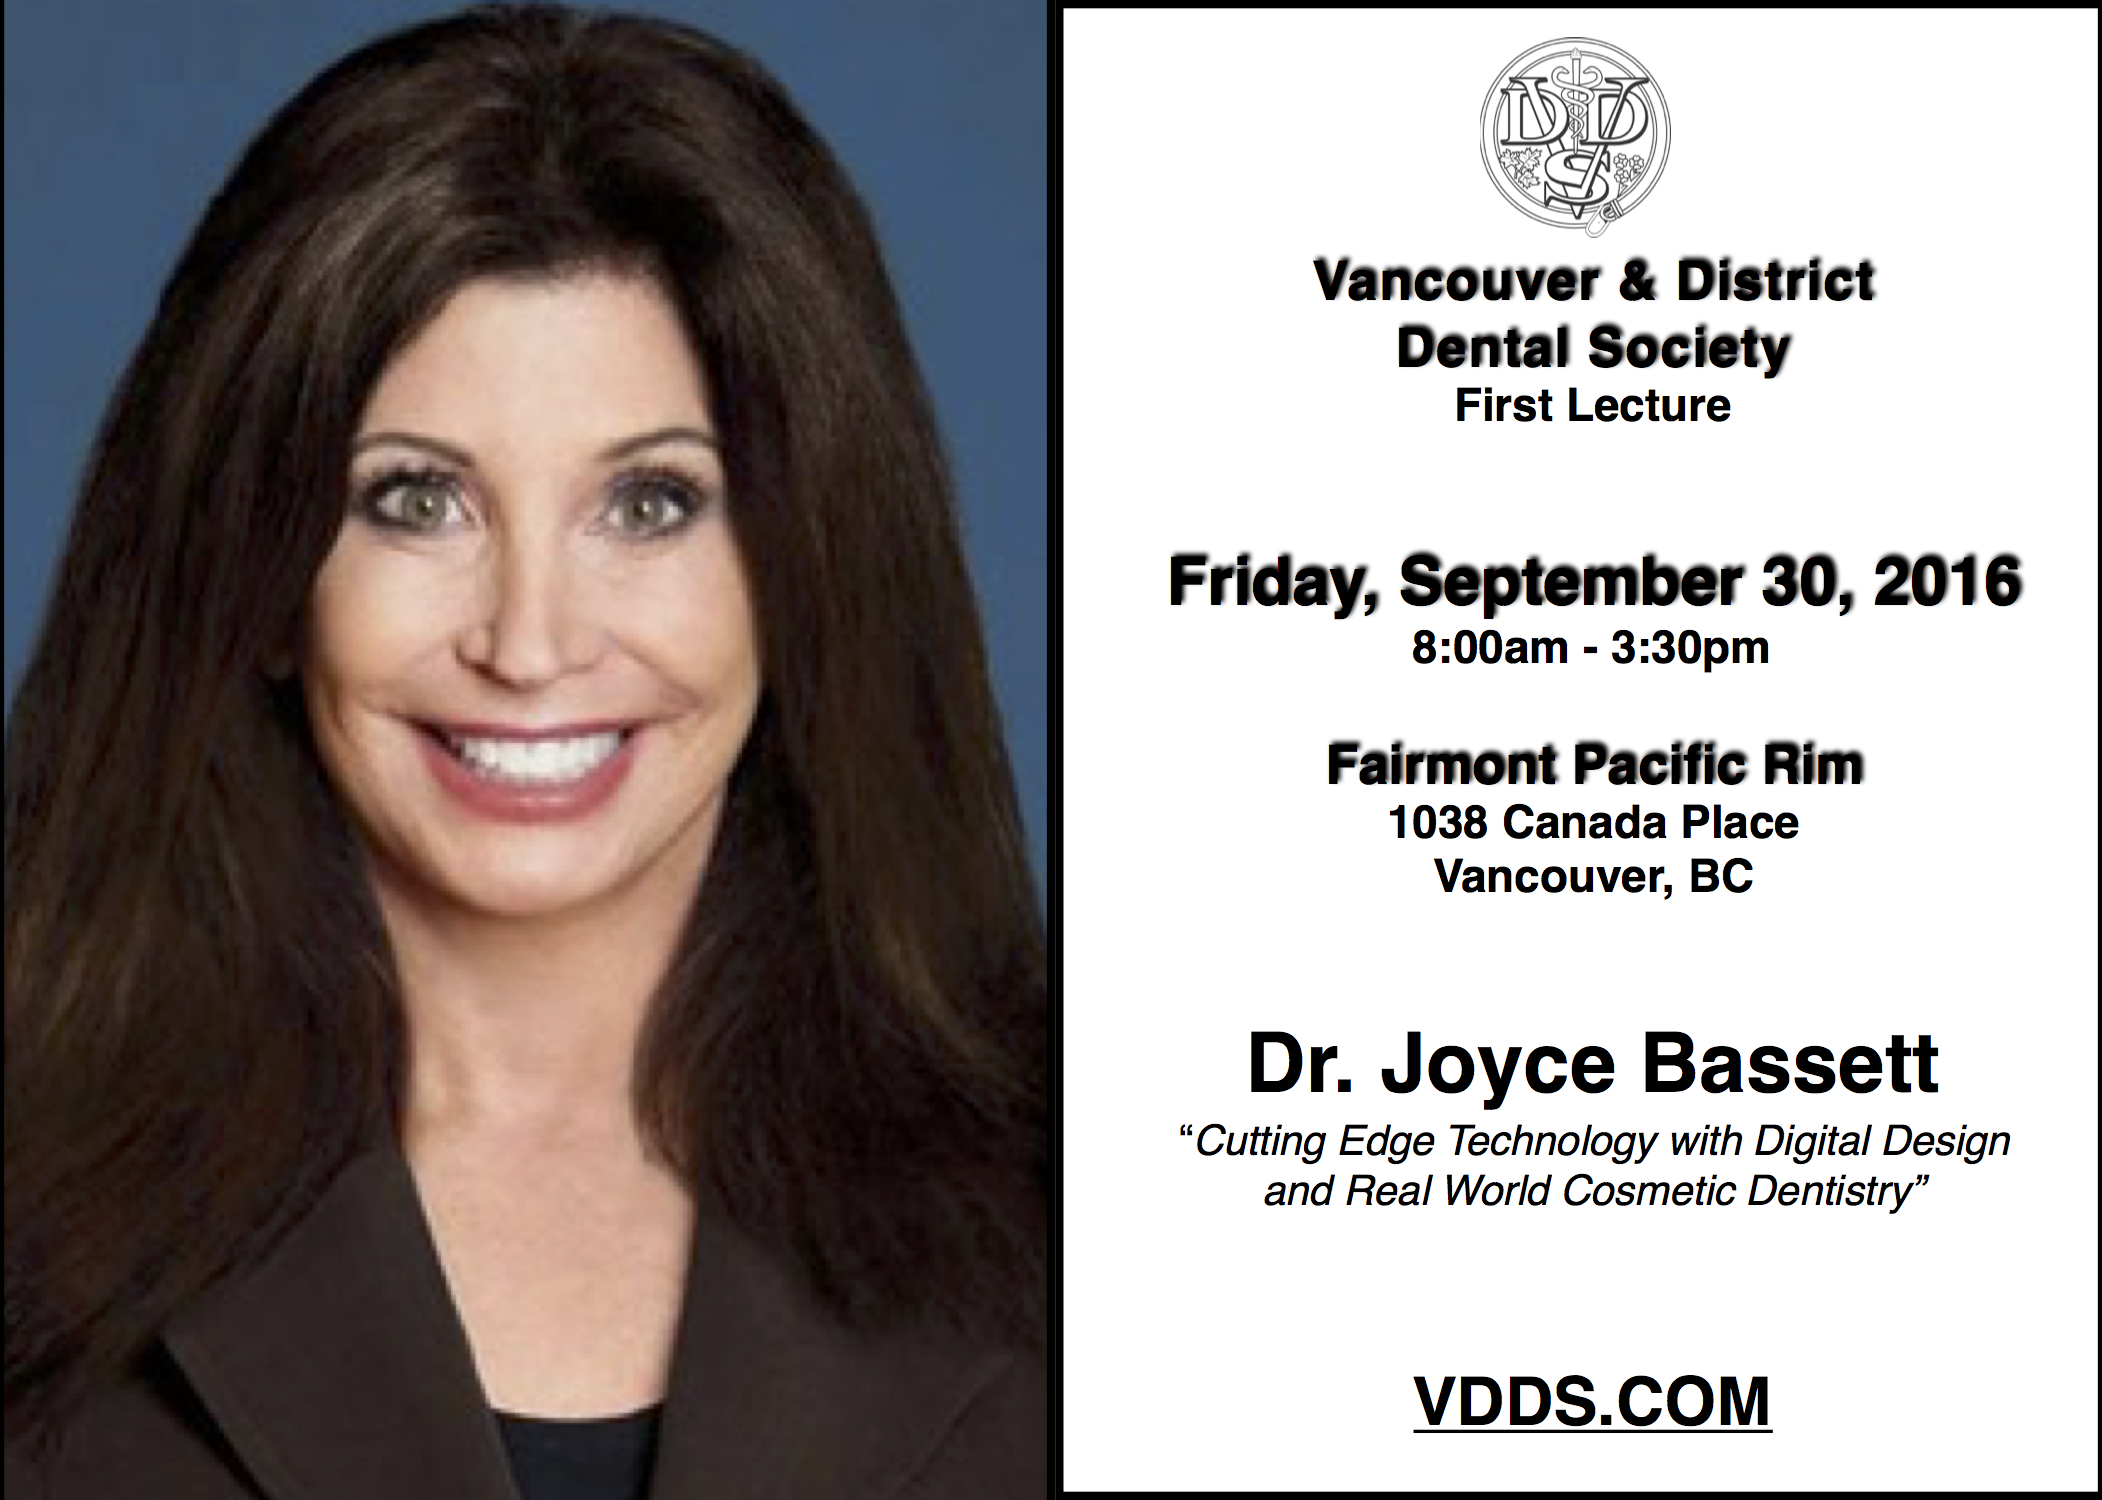 First Lecture - Friday, September 30 at the Fairmont Pacific Rim!